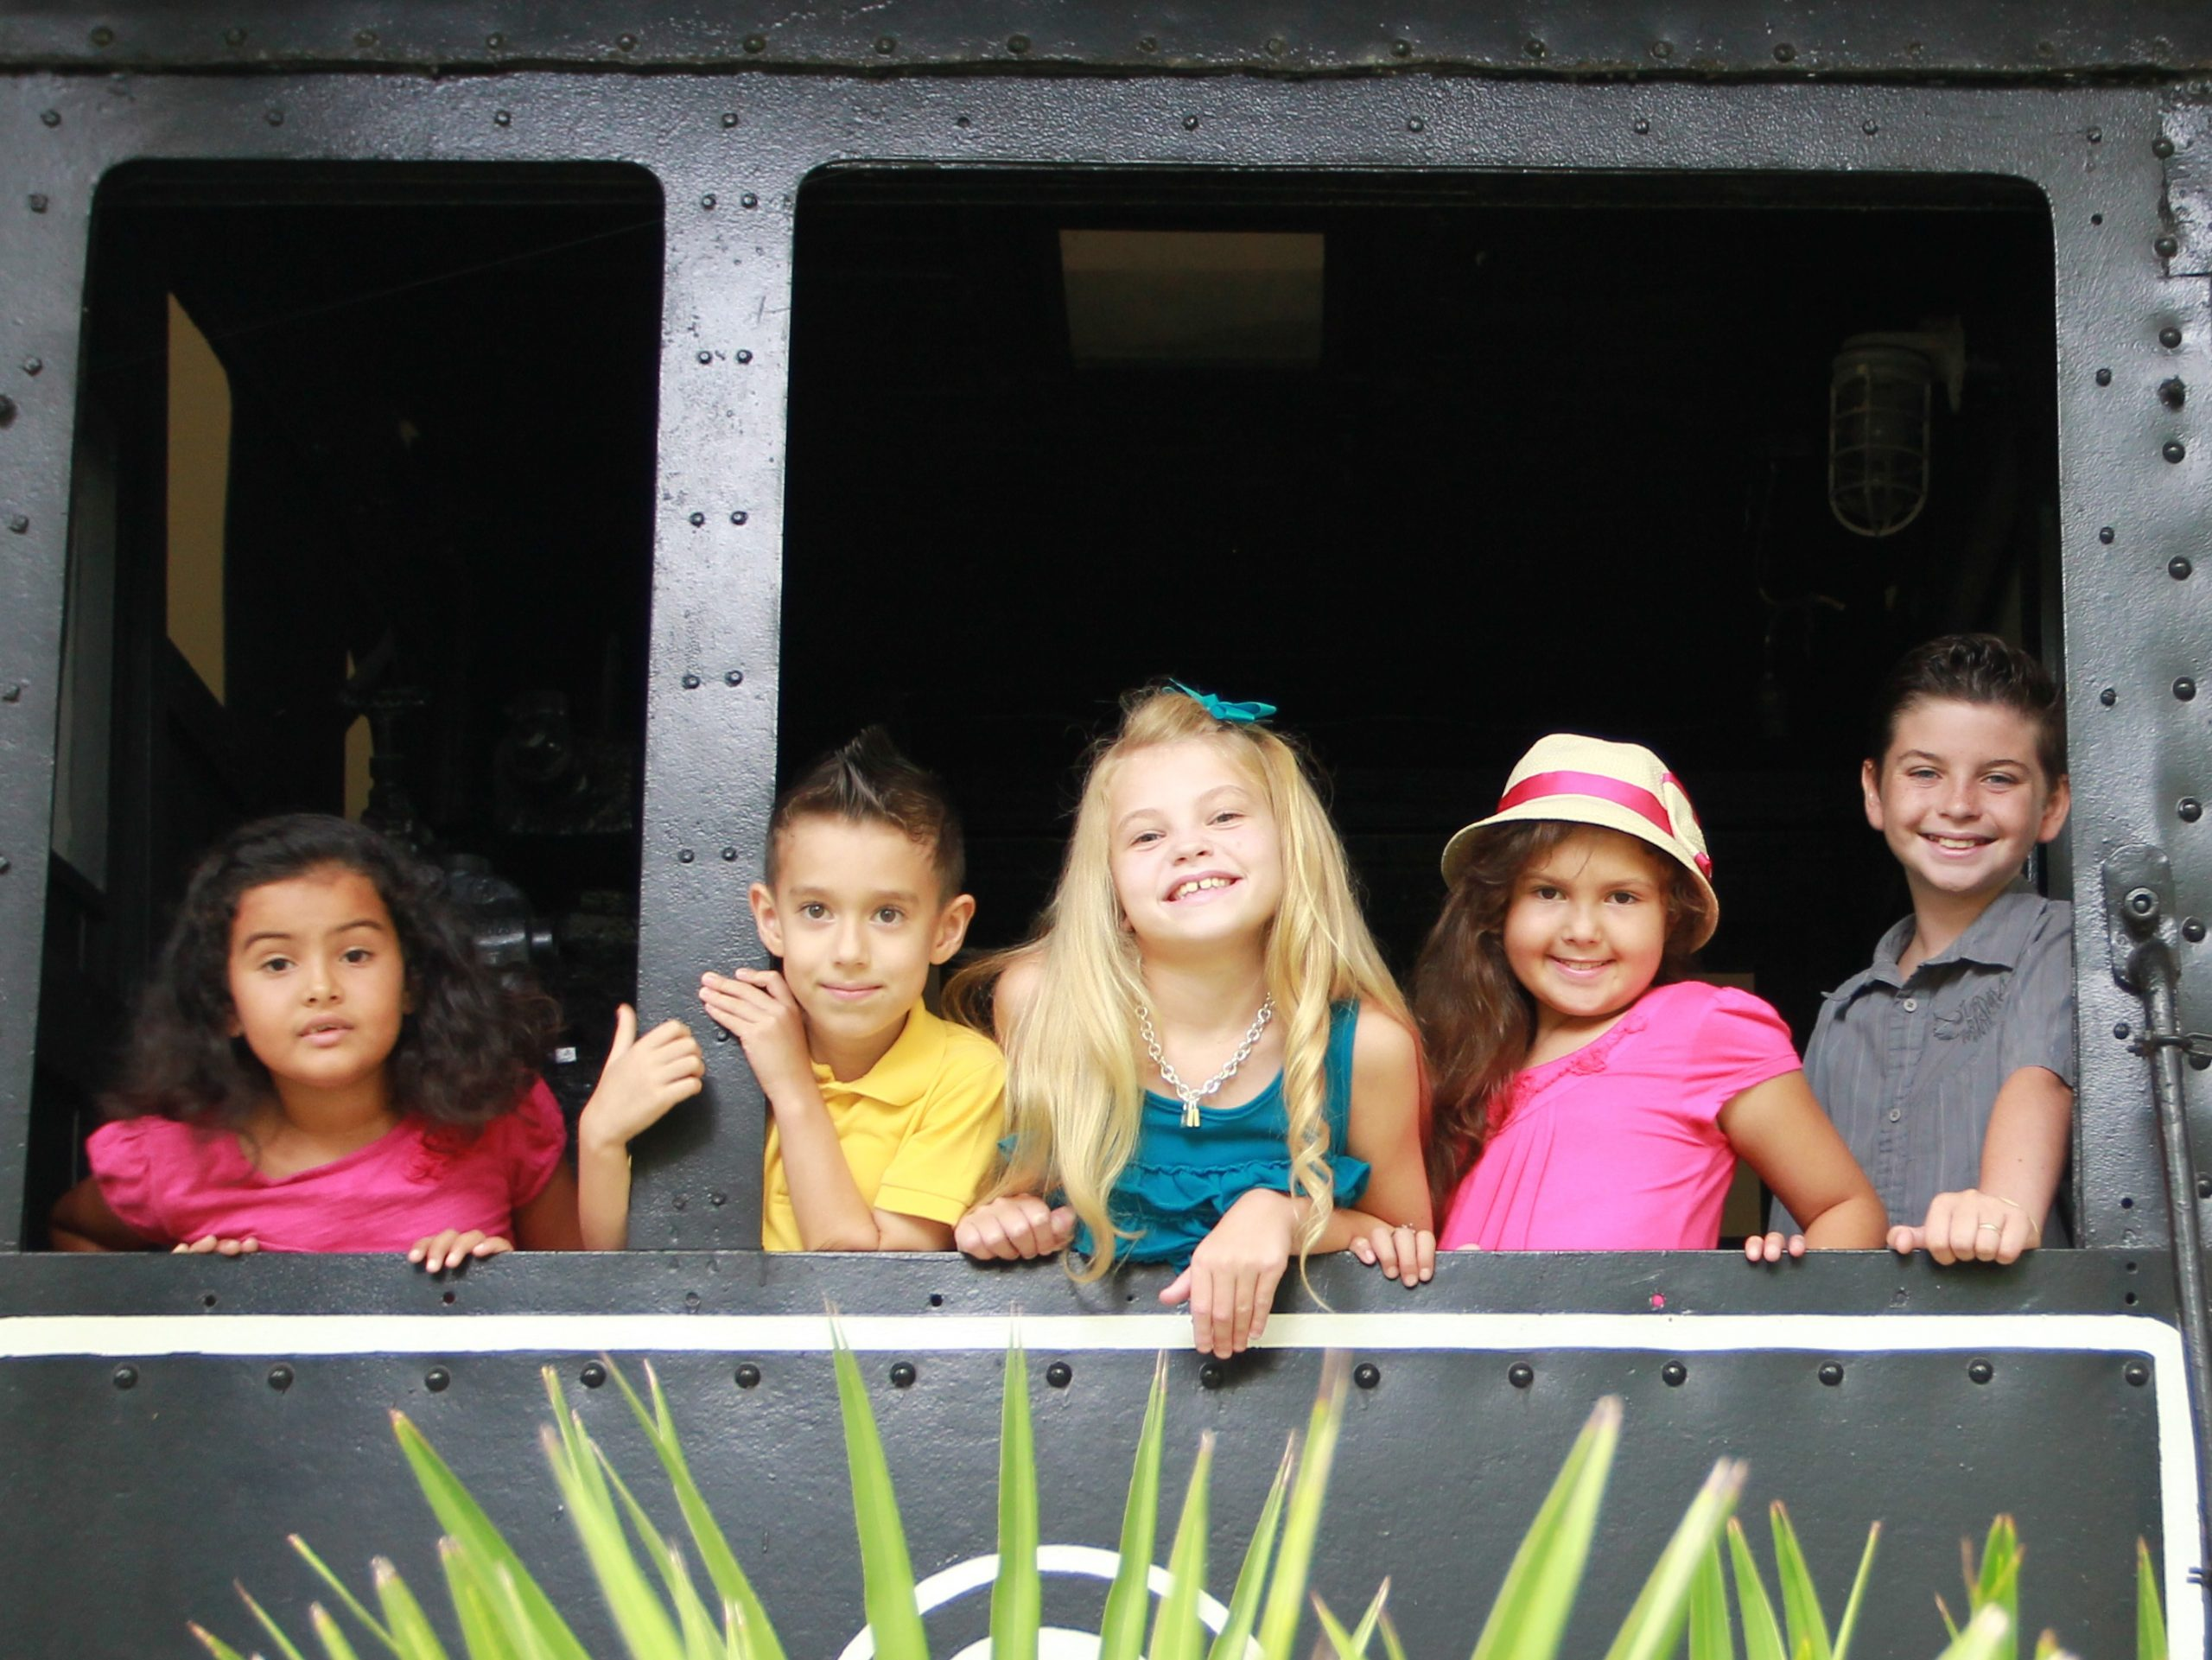 Children smiling out of locomotive window